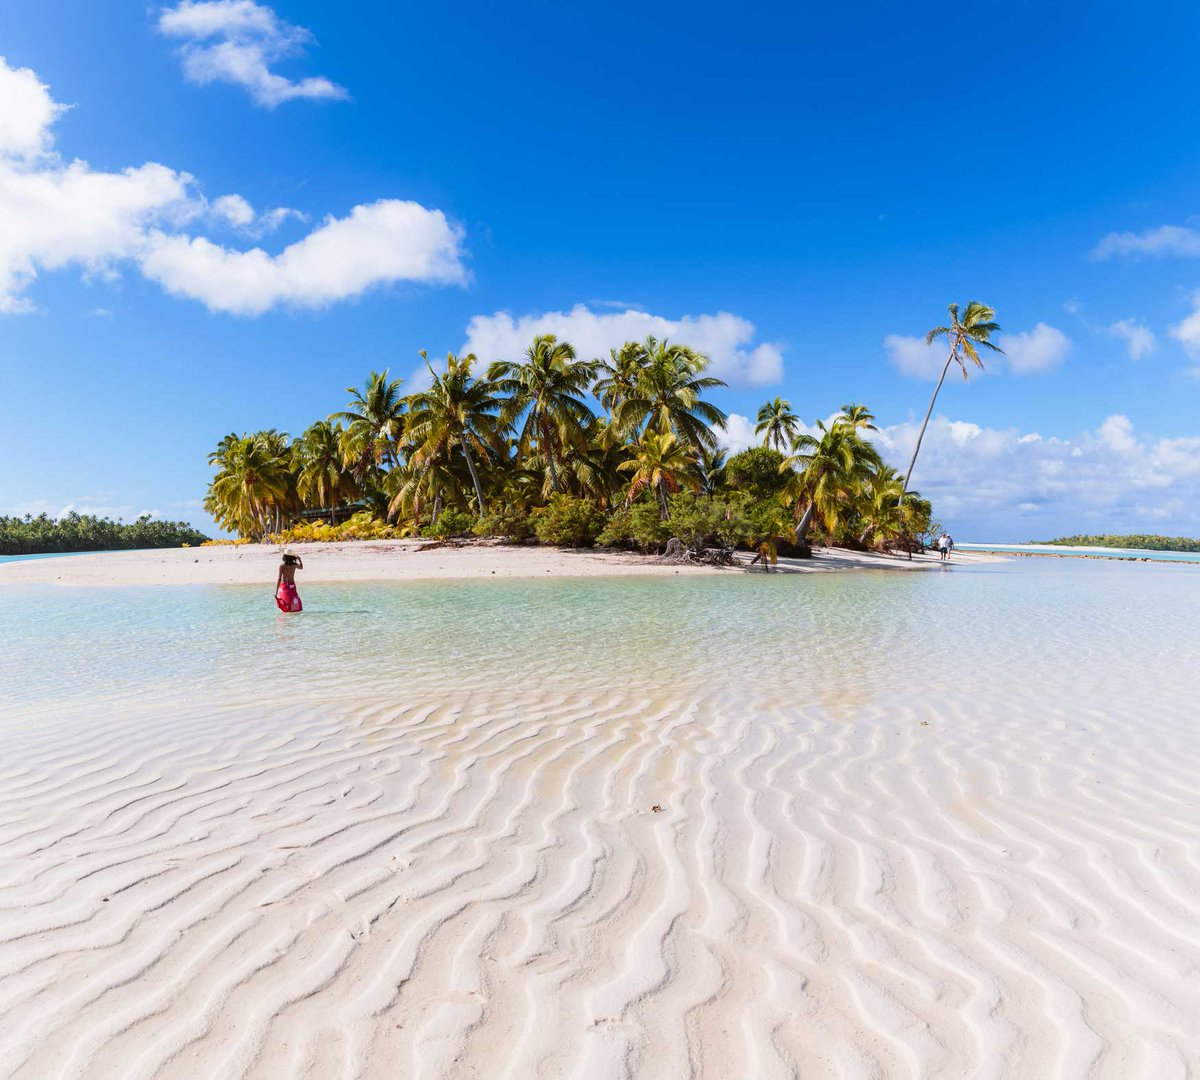 Forgive us, but we're about to drop the forbidden word... winter. It's coming. Time to plan your escape to the islands. Here's our guide for picking the best South Pacific holiday for you - https://t.co/gq7ClNTqkG #wintergetaway #winterescape #southpacific #saynotowinter https://t.co/7iN7ozaBU9